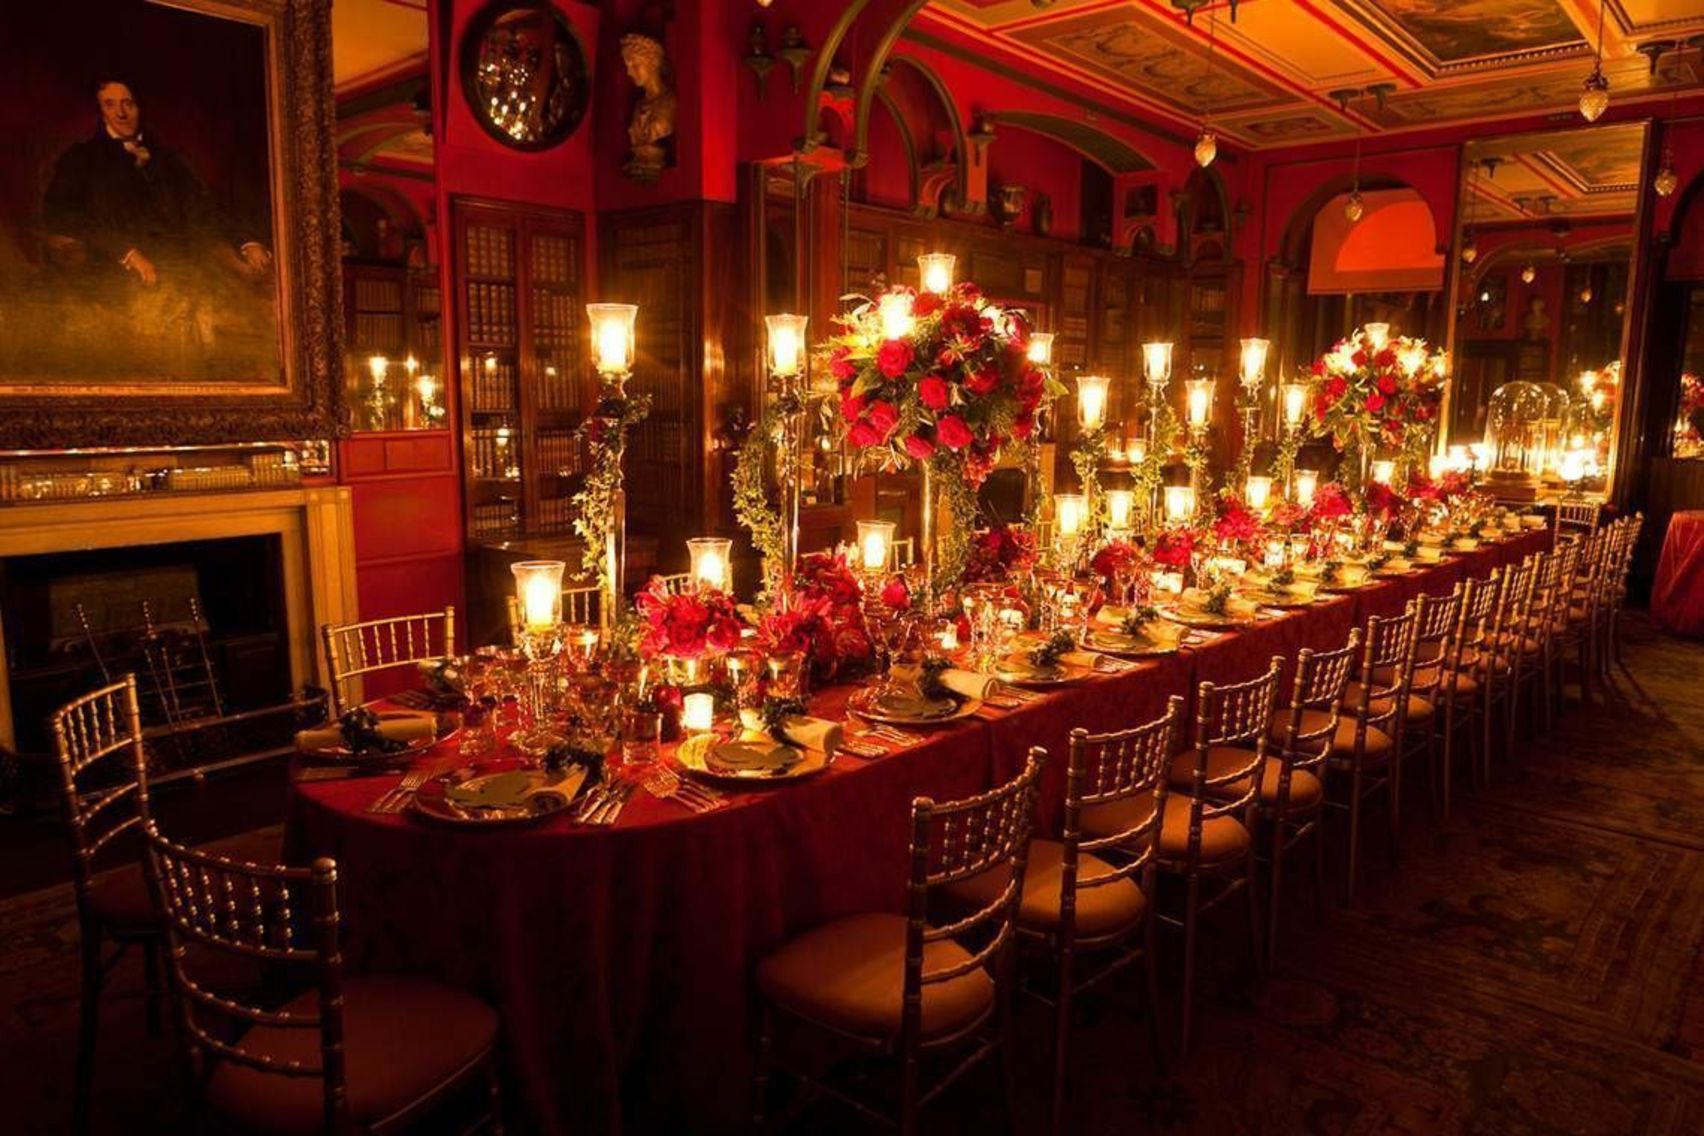 Dinner with candlelit tours, whole Museum hire, Sir John Soane's Museum